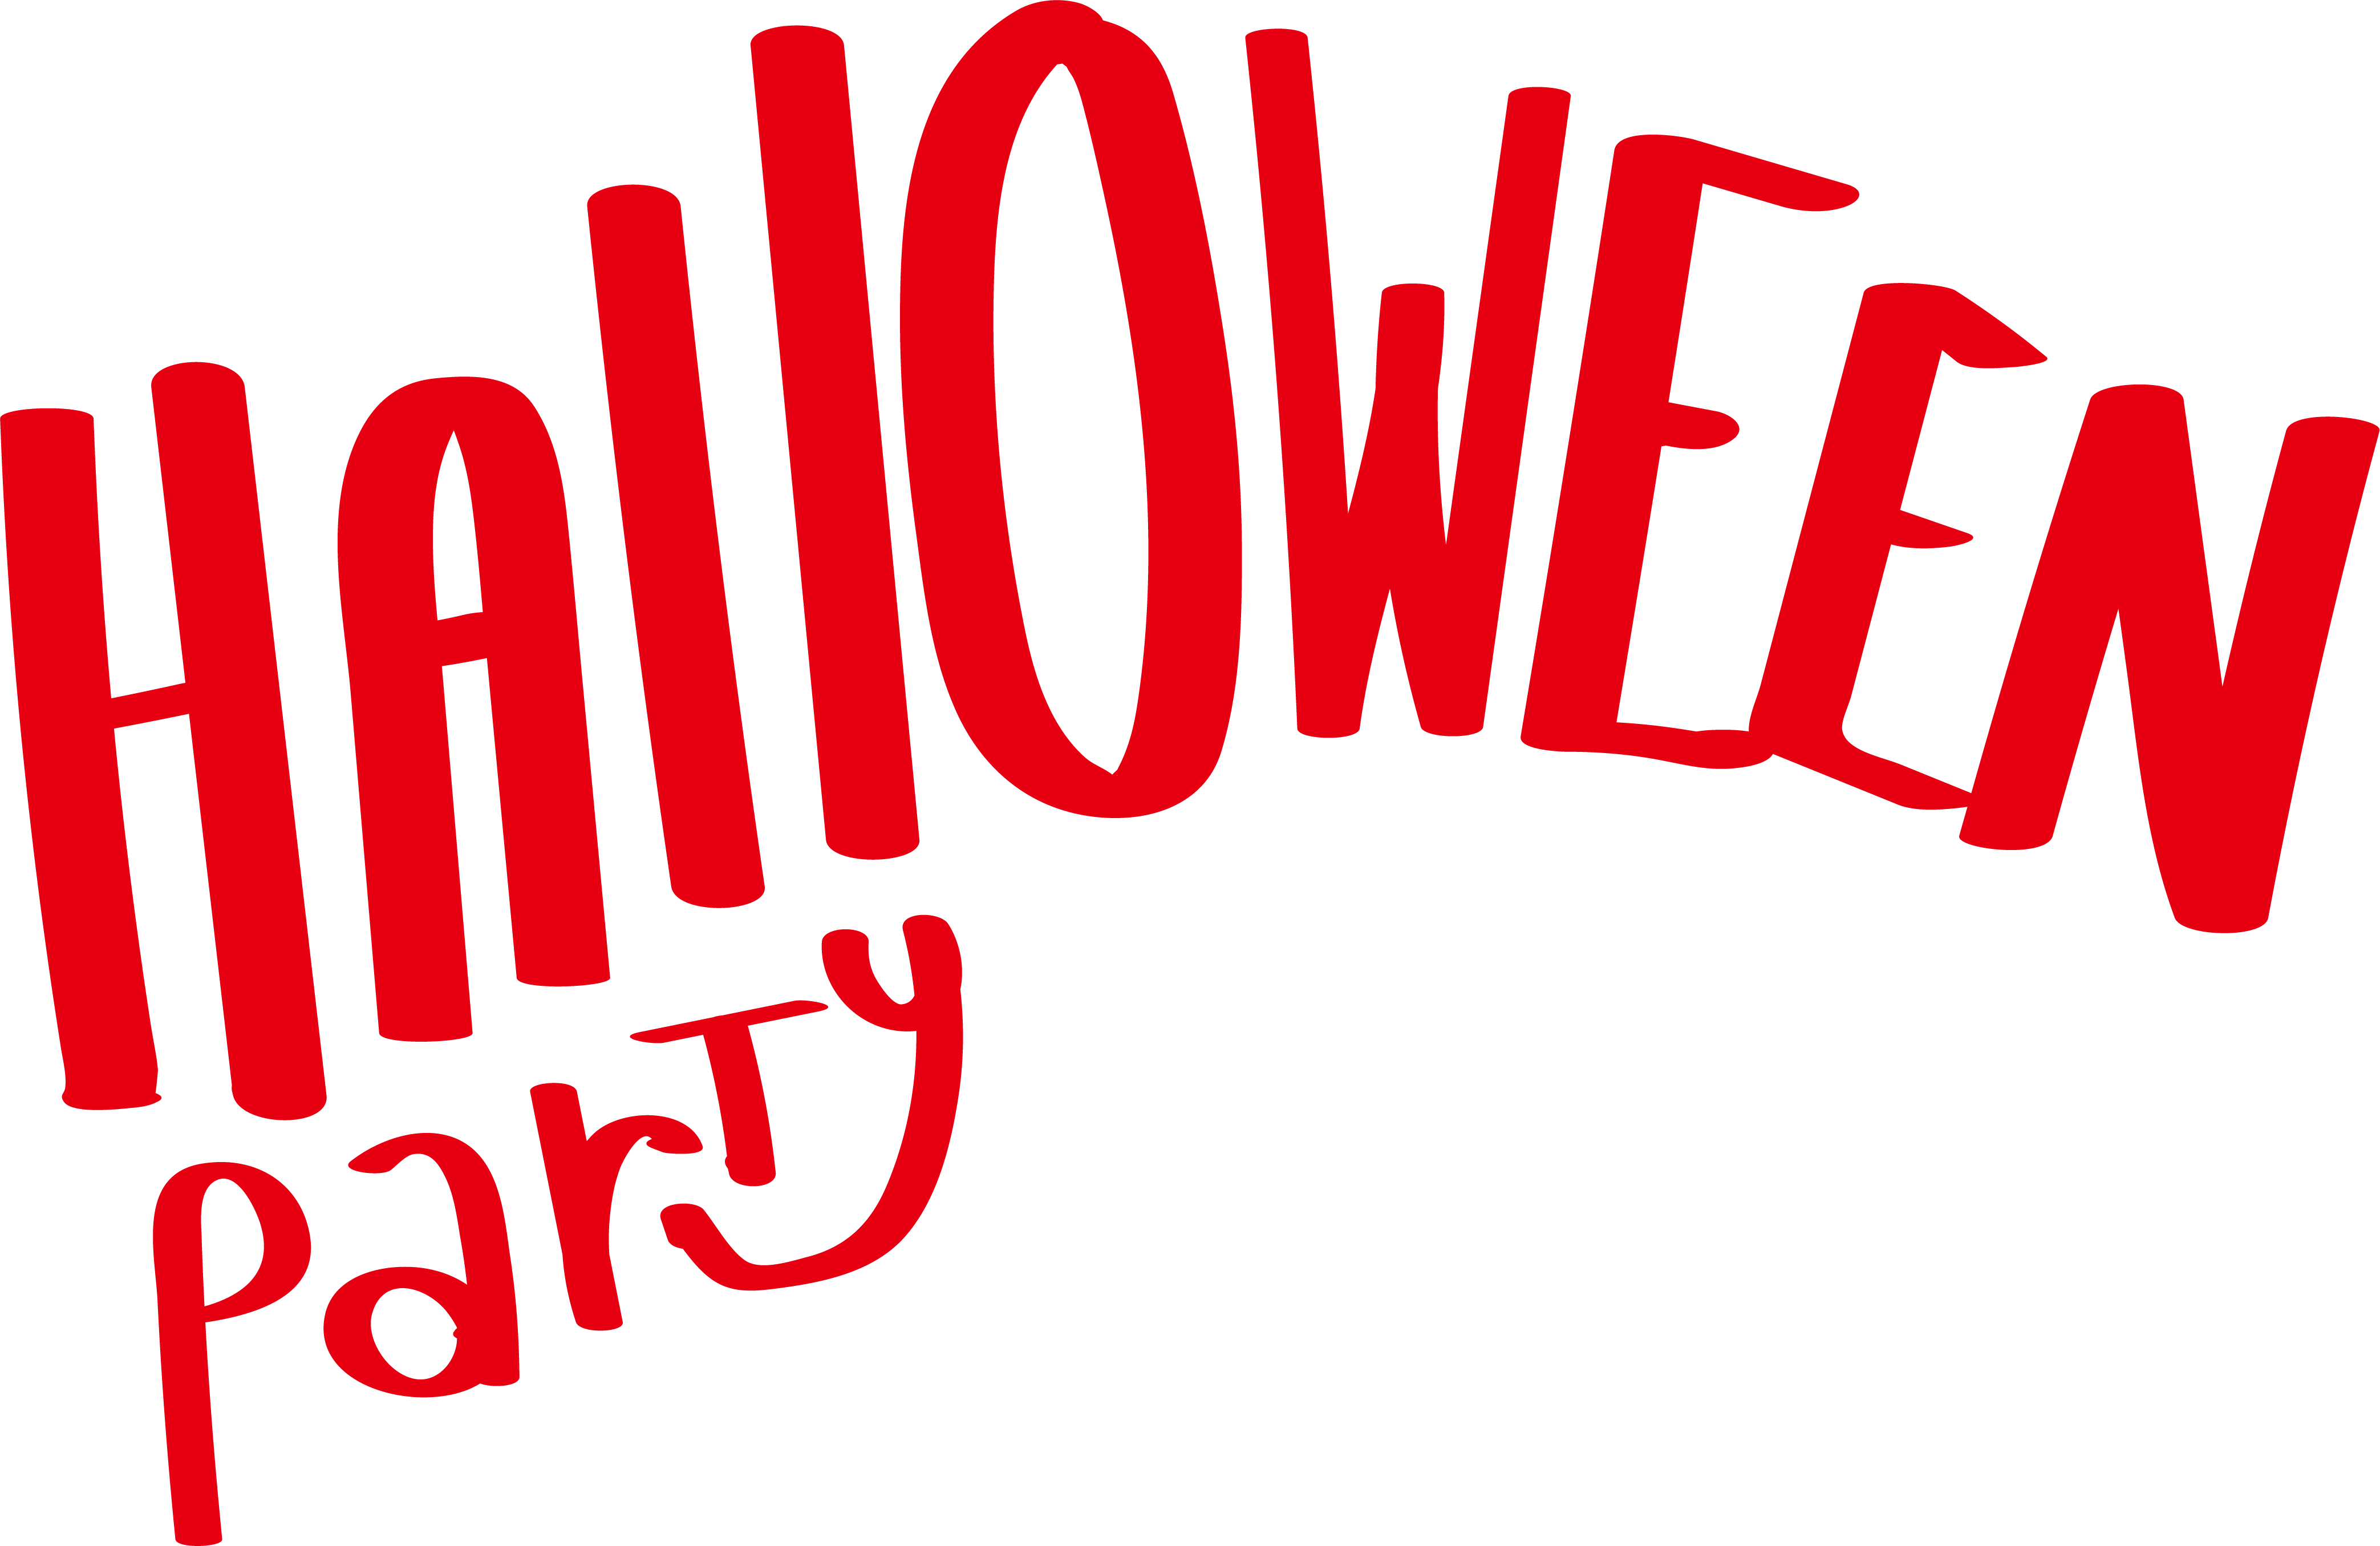 Words clipart word microsoft. Halloween clip art red